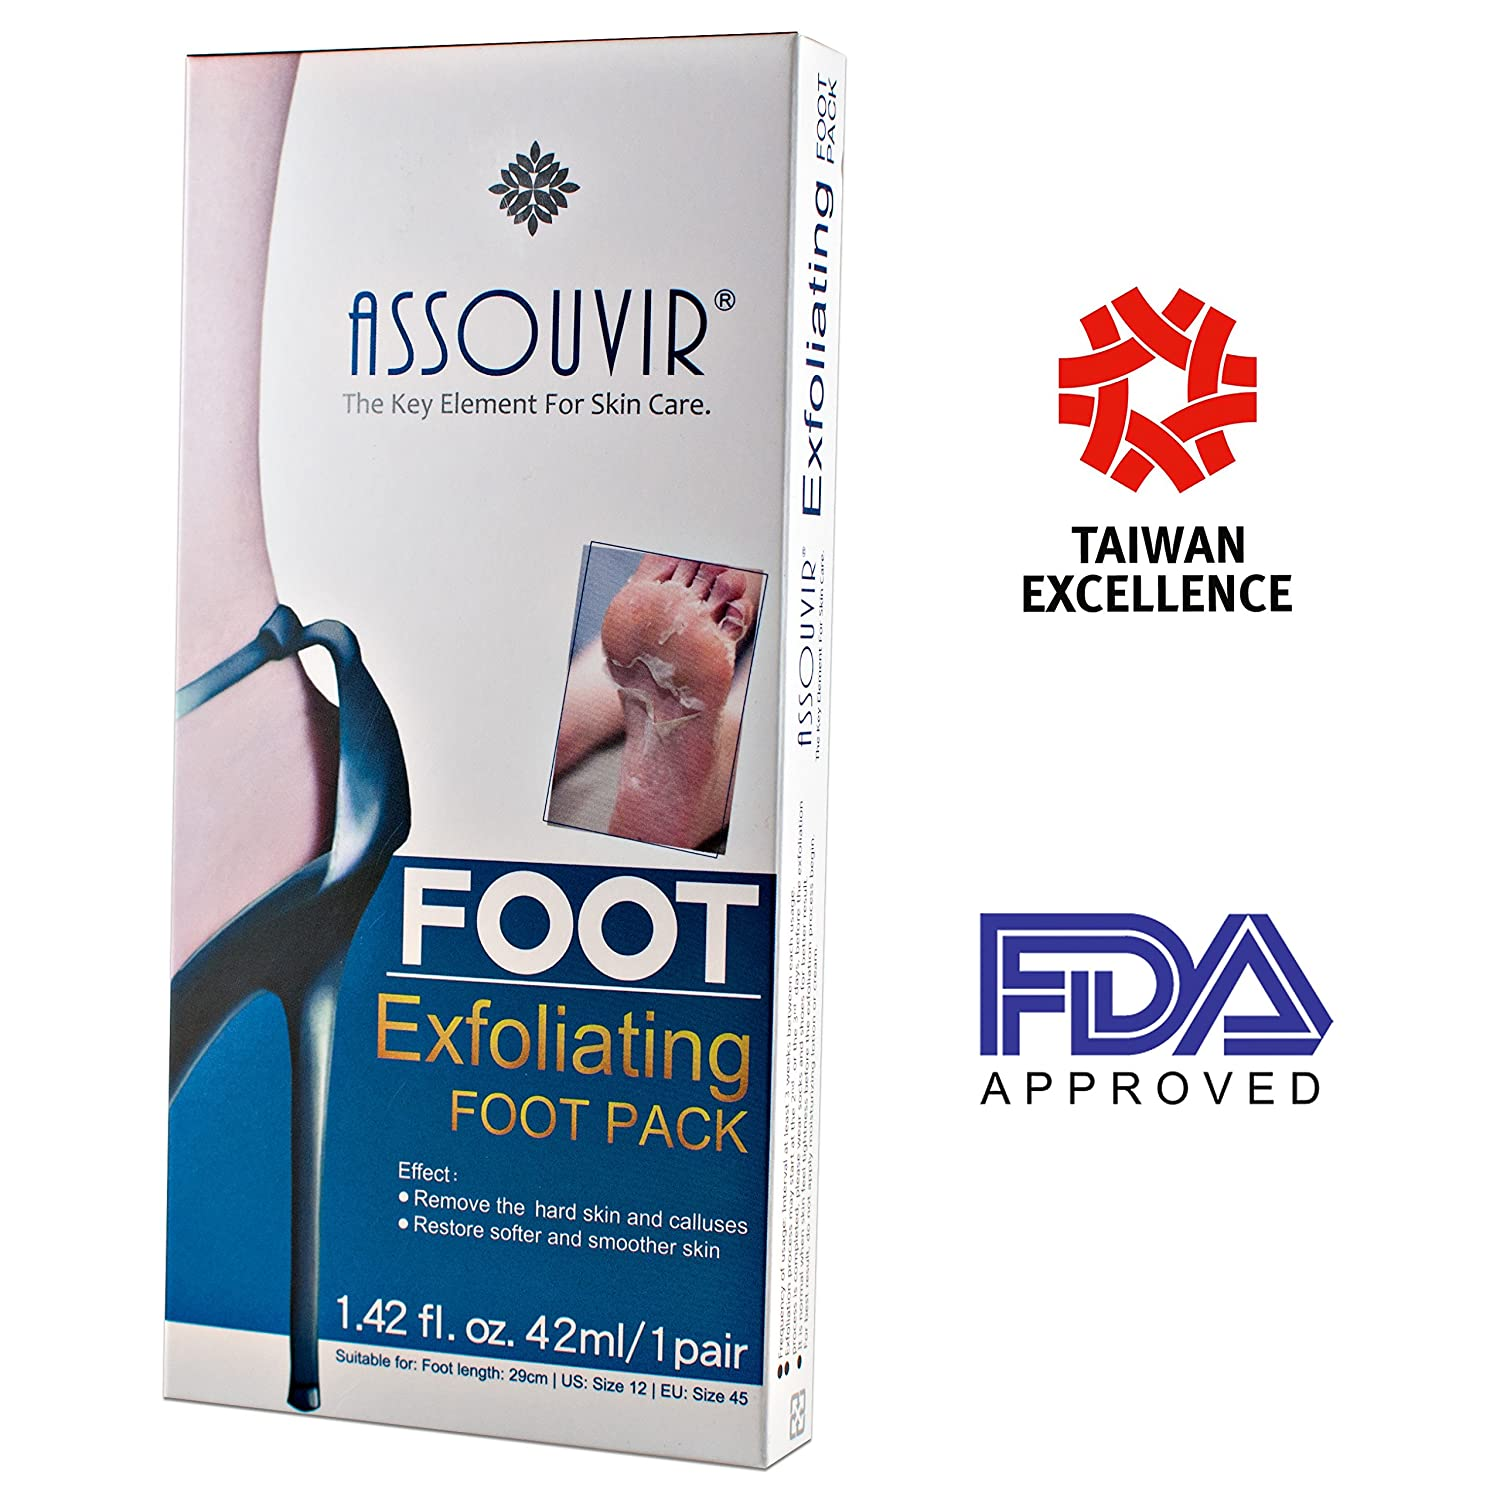 Exfoliating Foot Peel Mask - Baby Feet Peeling Mask for Calluses and Dead Skin Cells Remove - Get Gentle Soft Silky Heel - Smooth Soft Touch Feet - Natural Extracts Only MISATSU INTERNATIONAL CO. LTD.